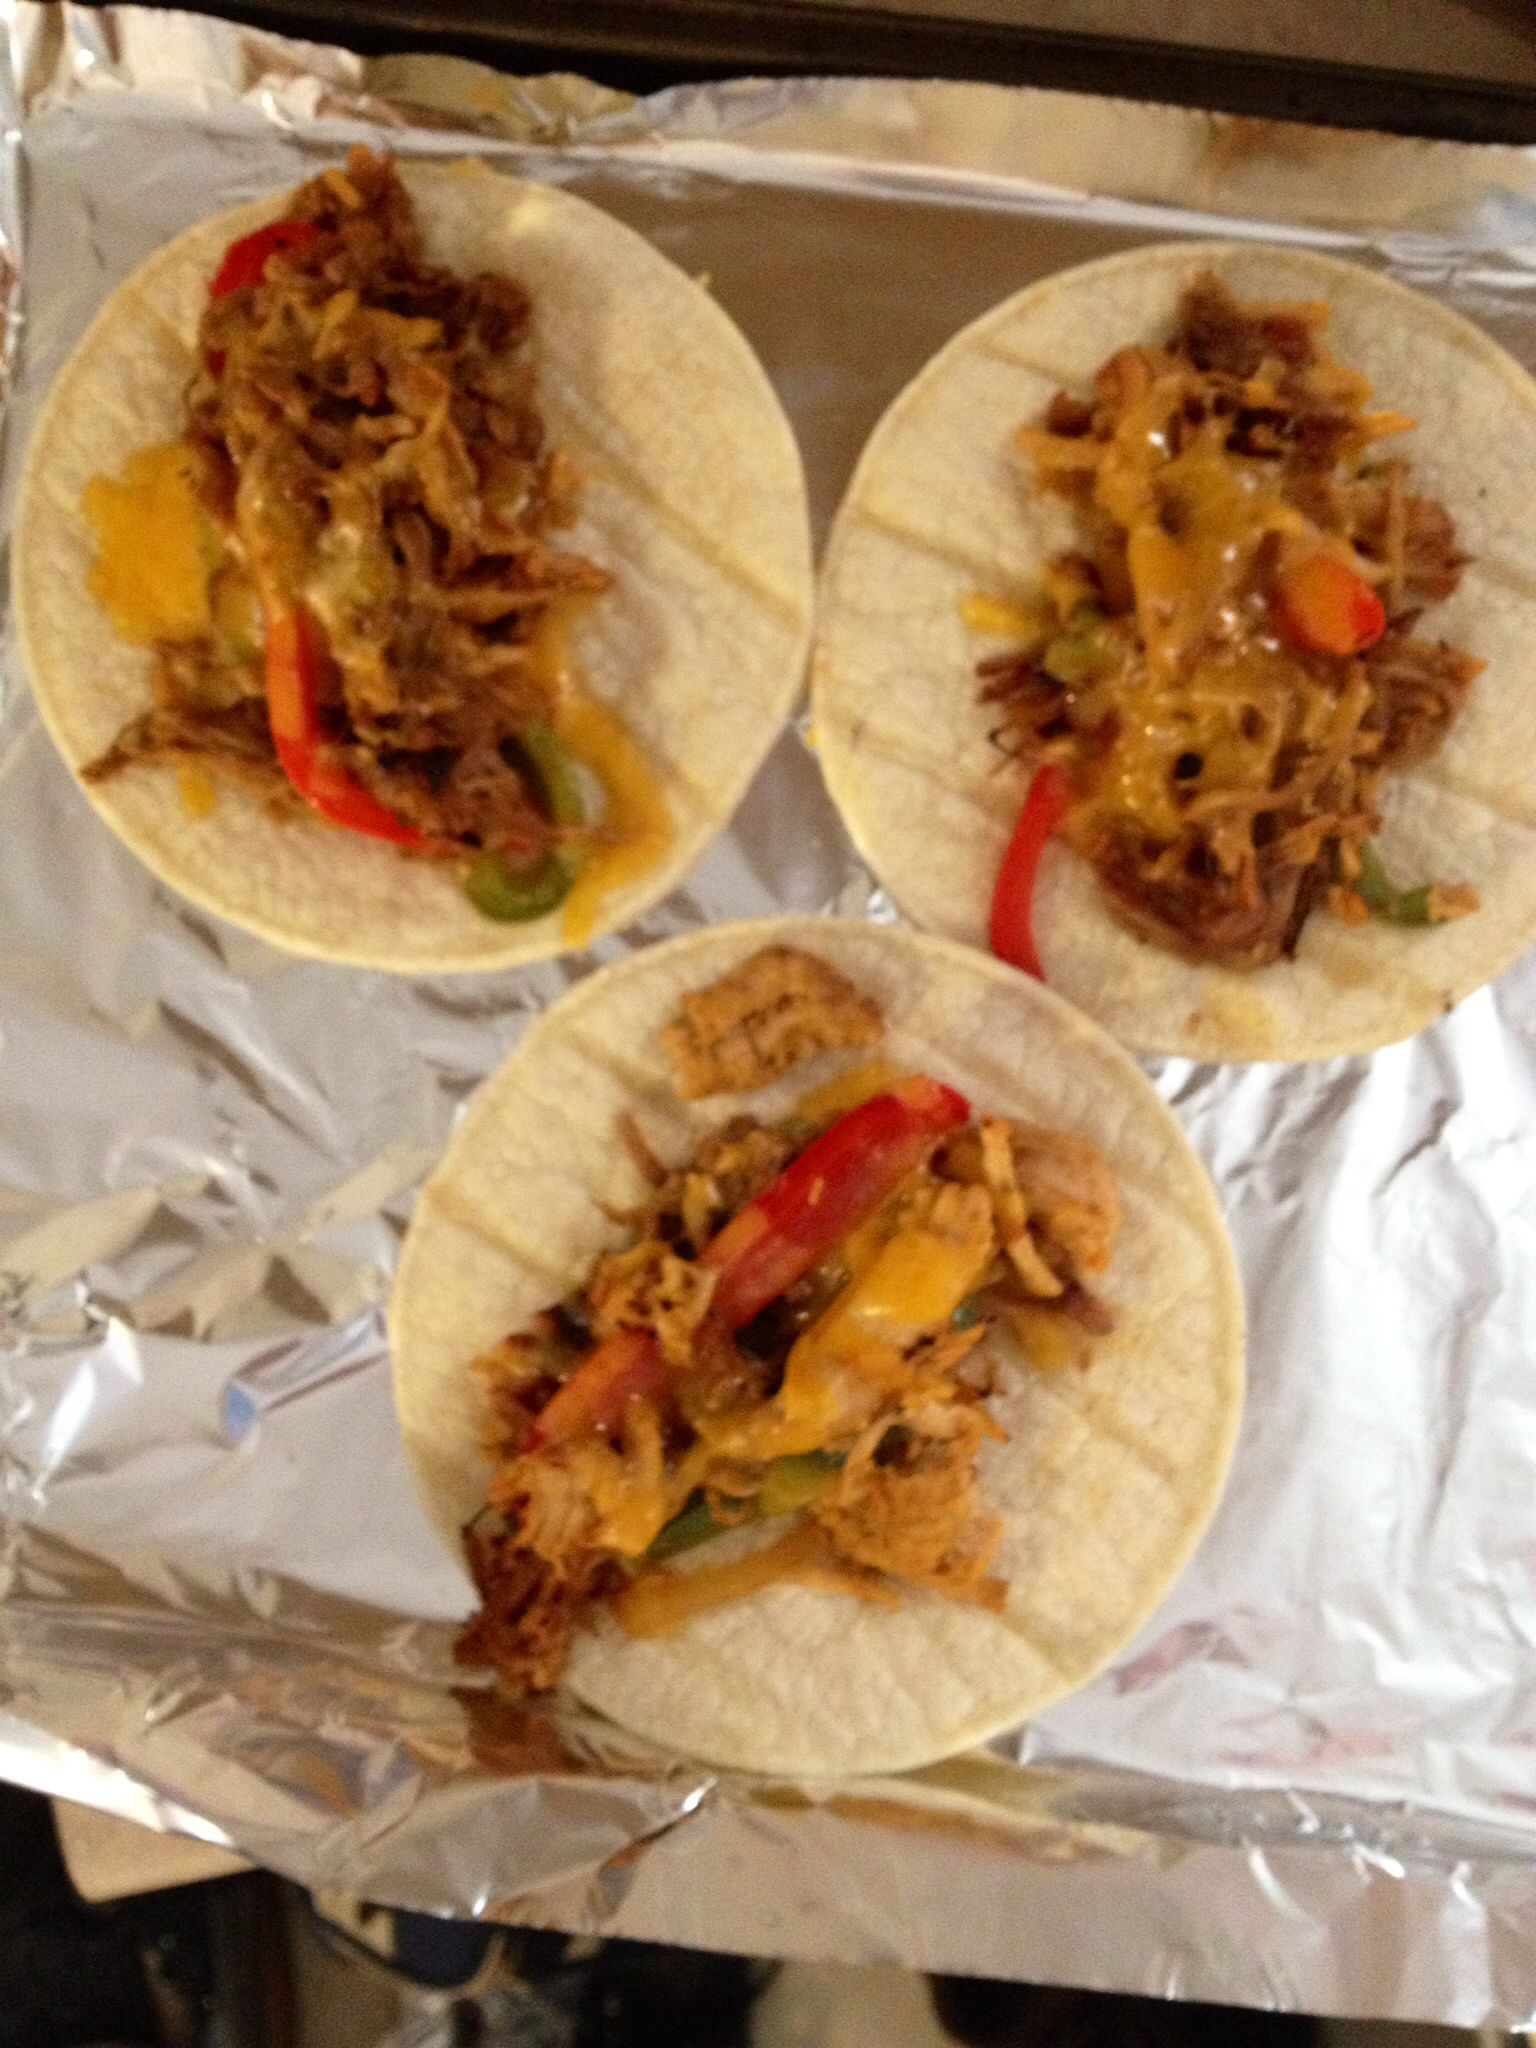 Pork carnitas. Tried this tonight. I couldn't make them fast enough!! Kids were chowing down!